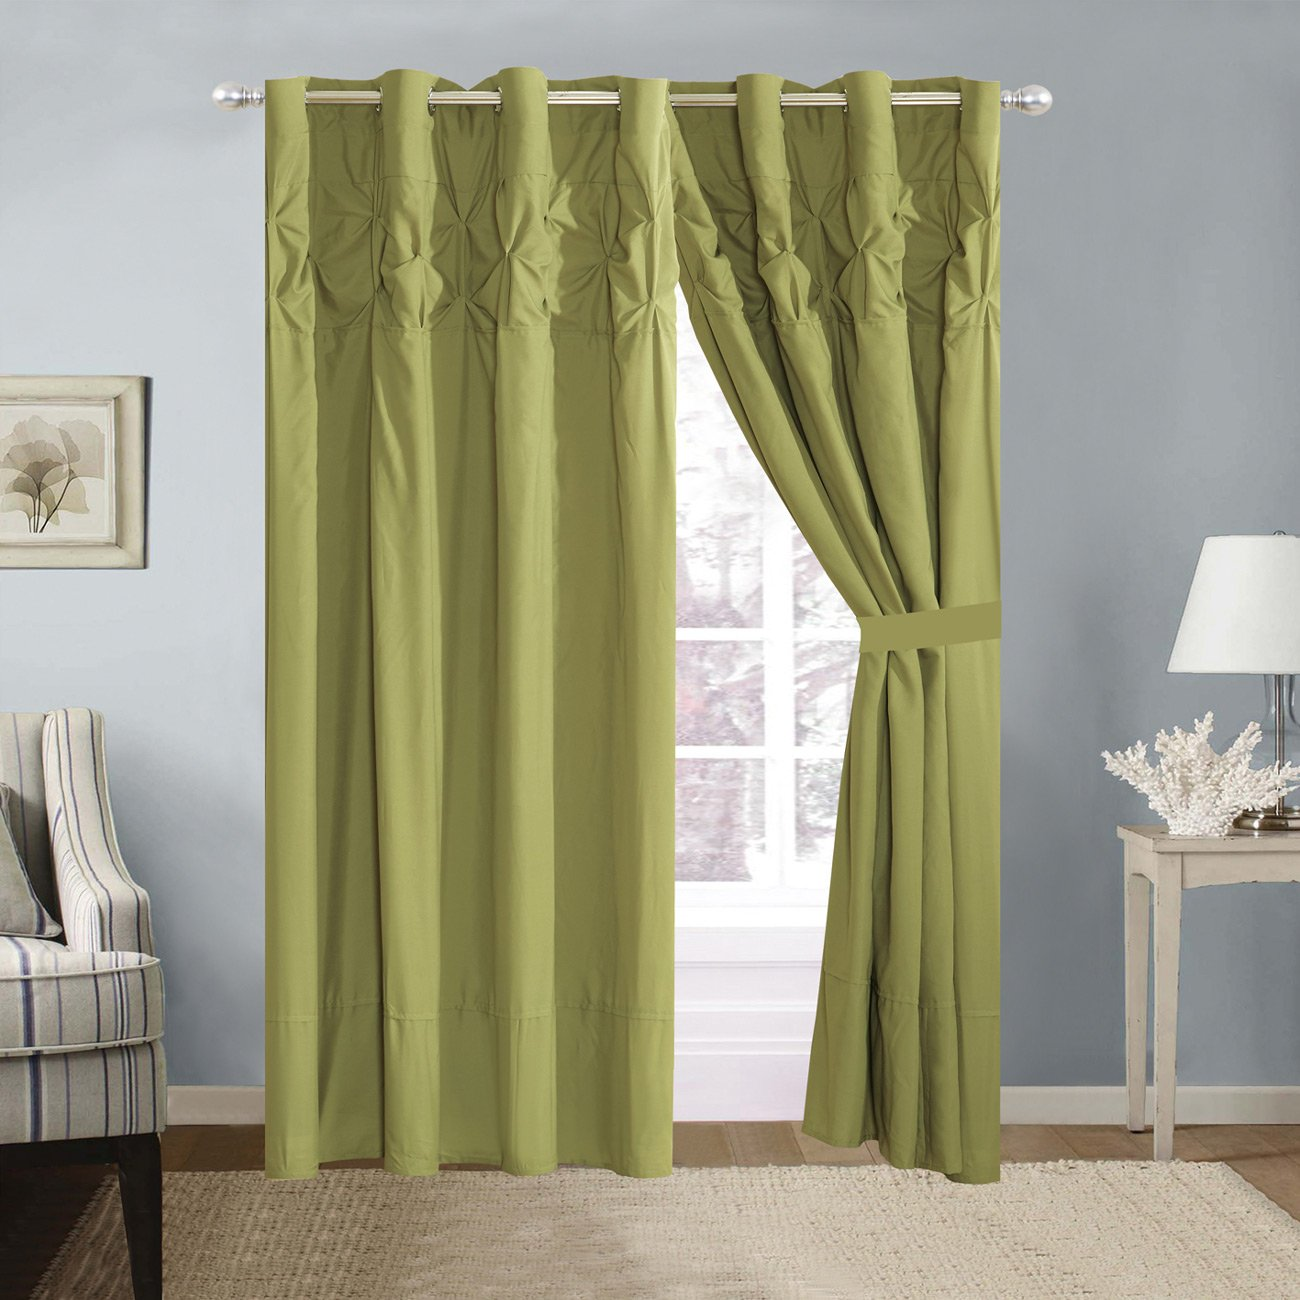 4 Piece Solid SAGE Green Double-Needle Stitch Pinch Pleat Grommet Window Curtain Set 108 x 84-inch, 2 Panels 2 Ties